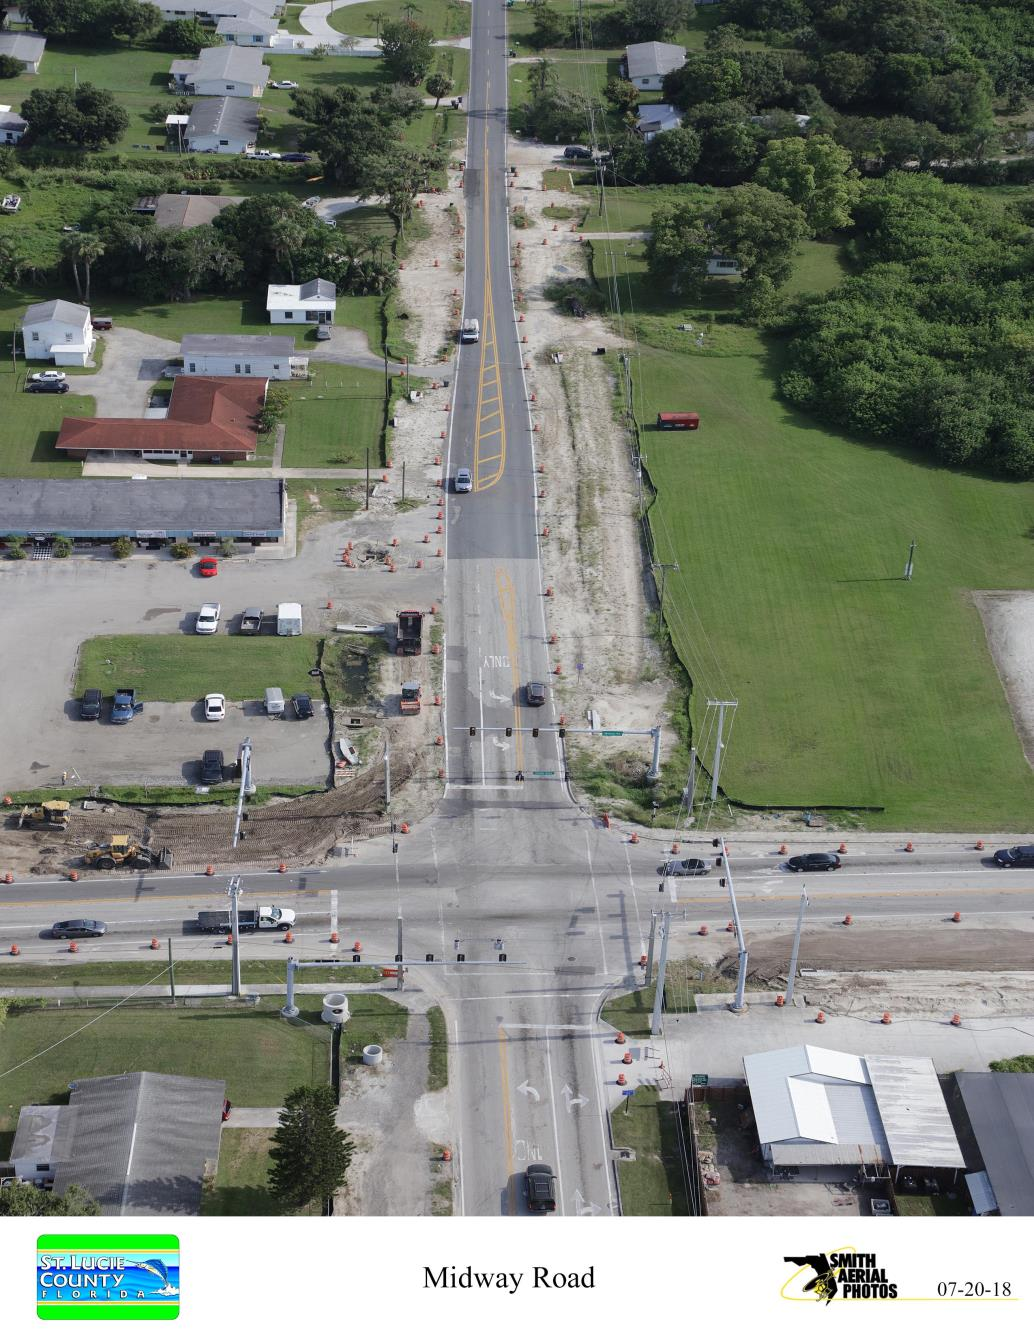 Intersection of Oleander Ave and Midway Rd from South